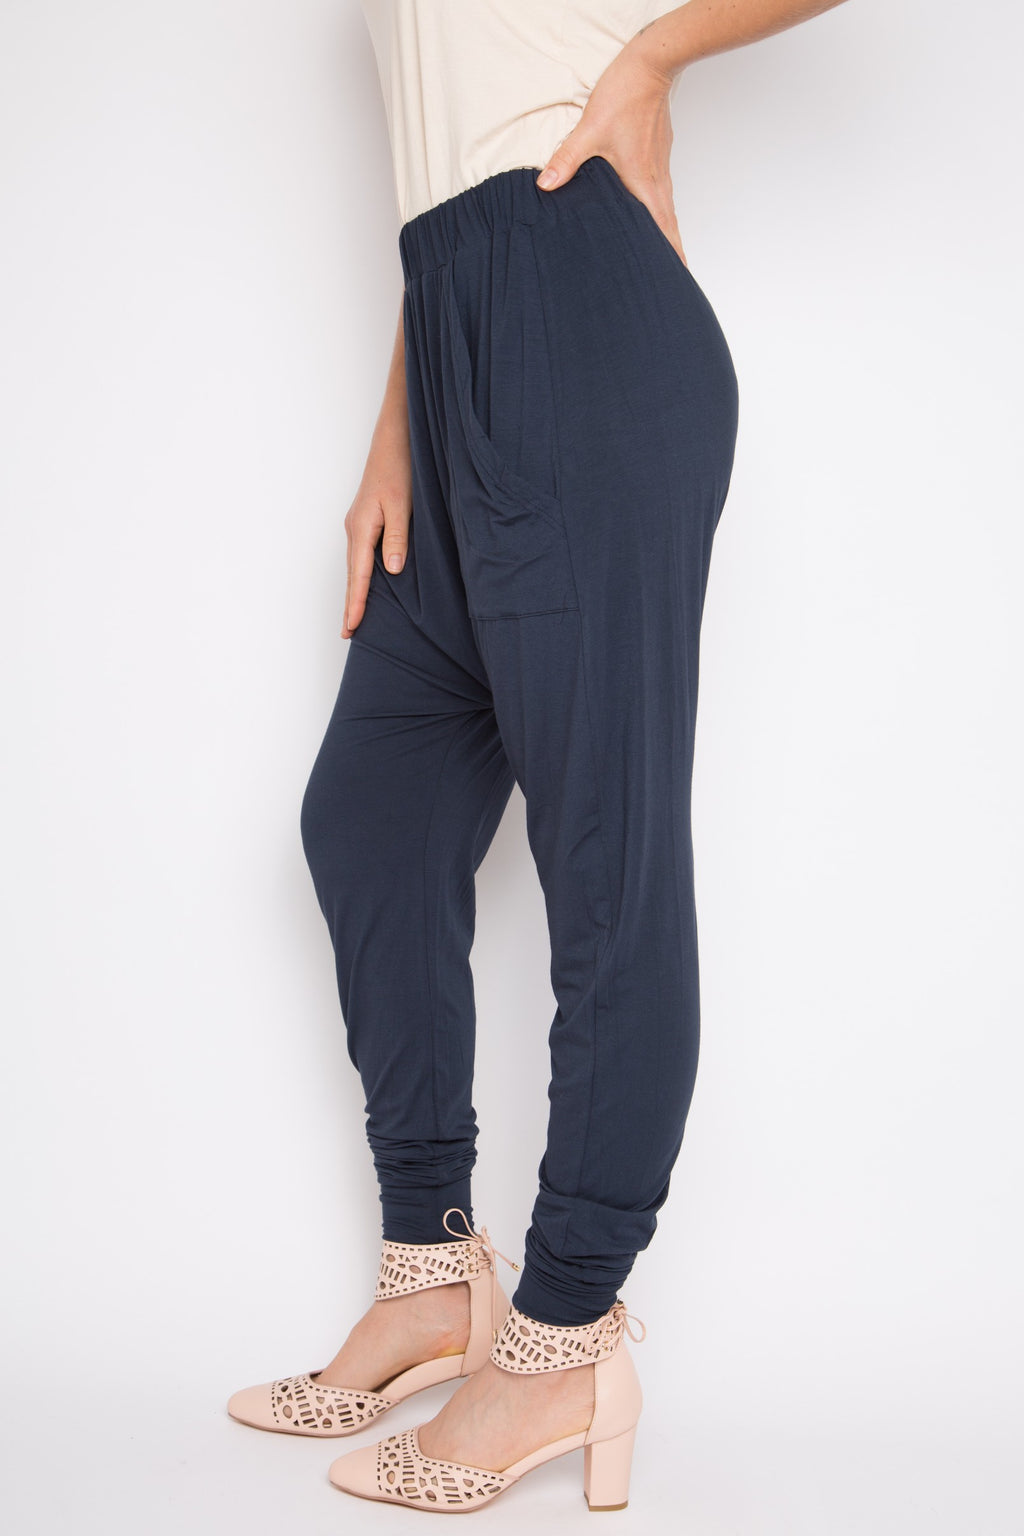 Bamboo Cuffed Droppy Pant in Midnight